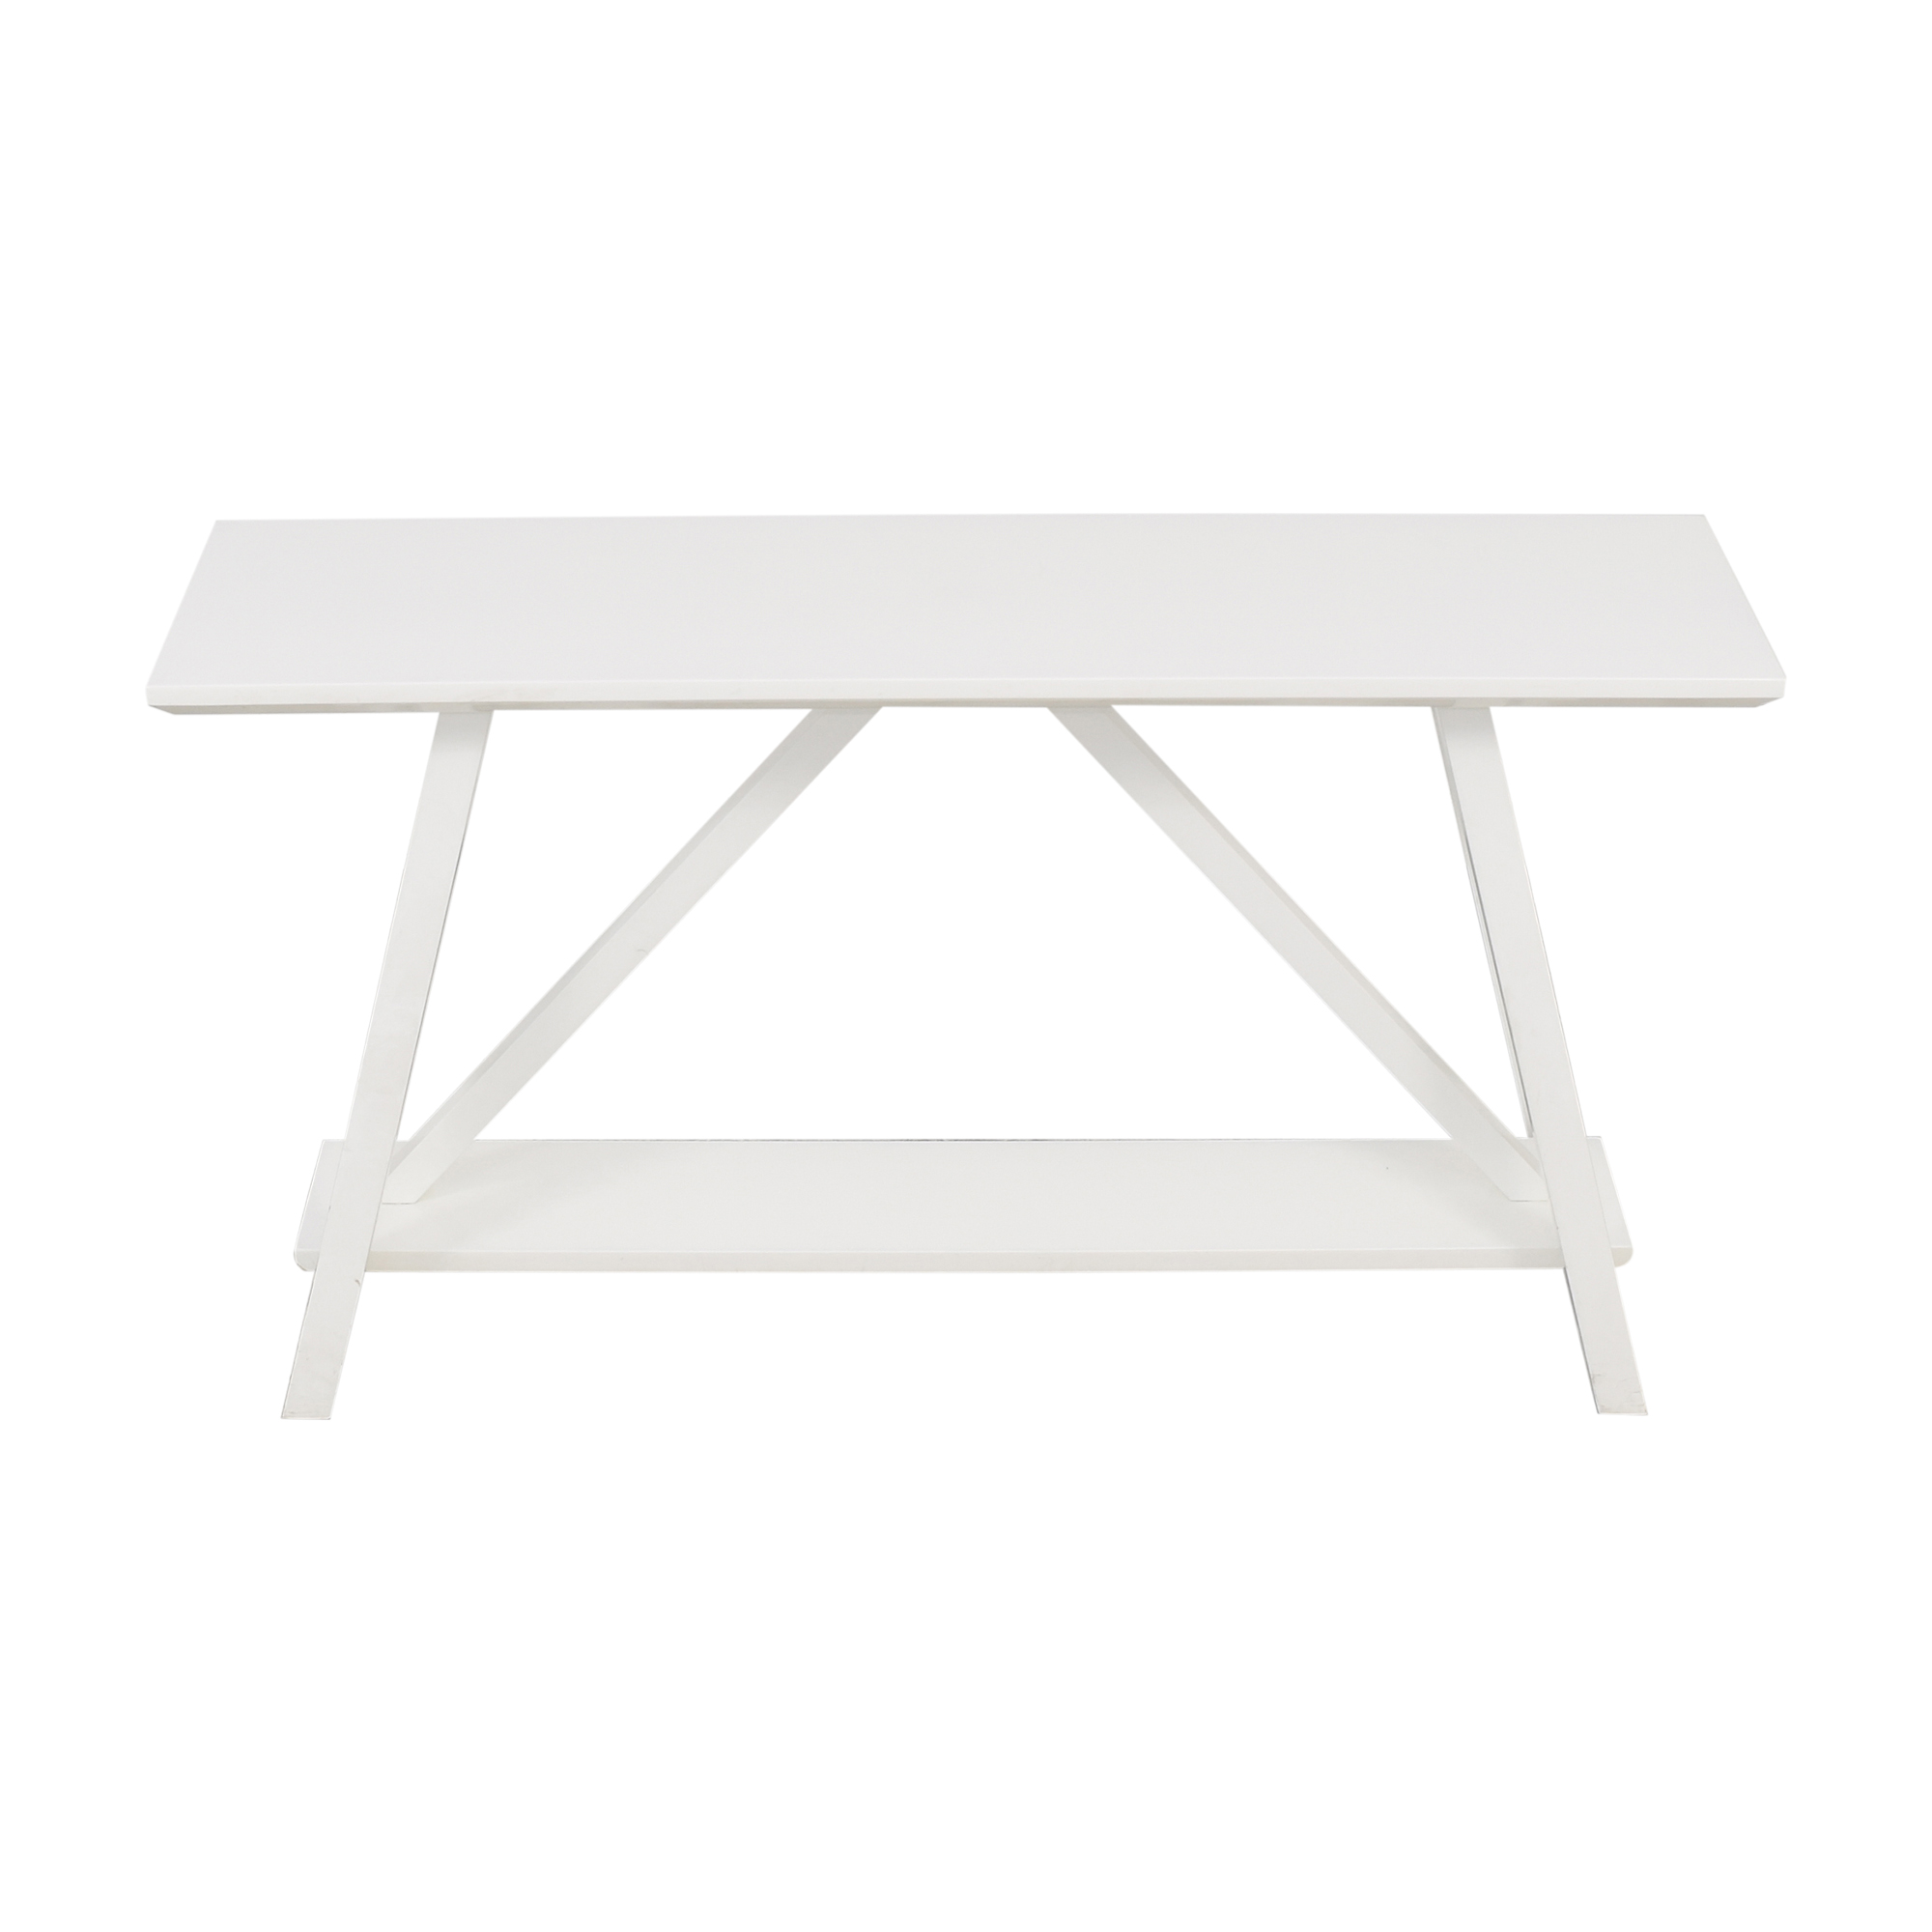 Crate & Barrel Crate & Barrel Console Table second hand